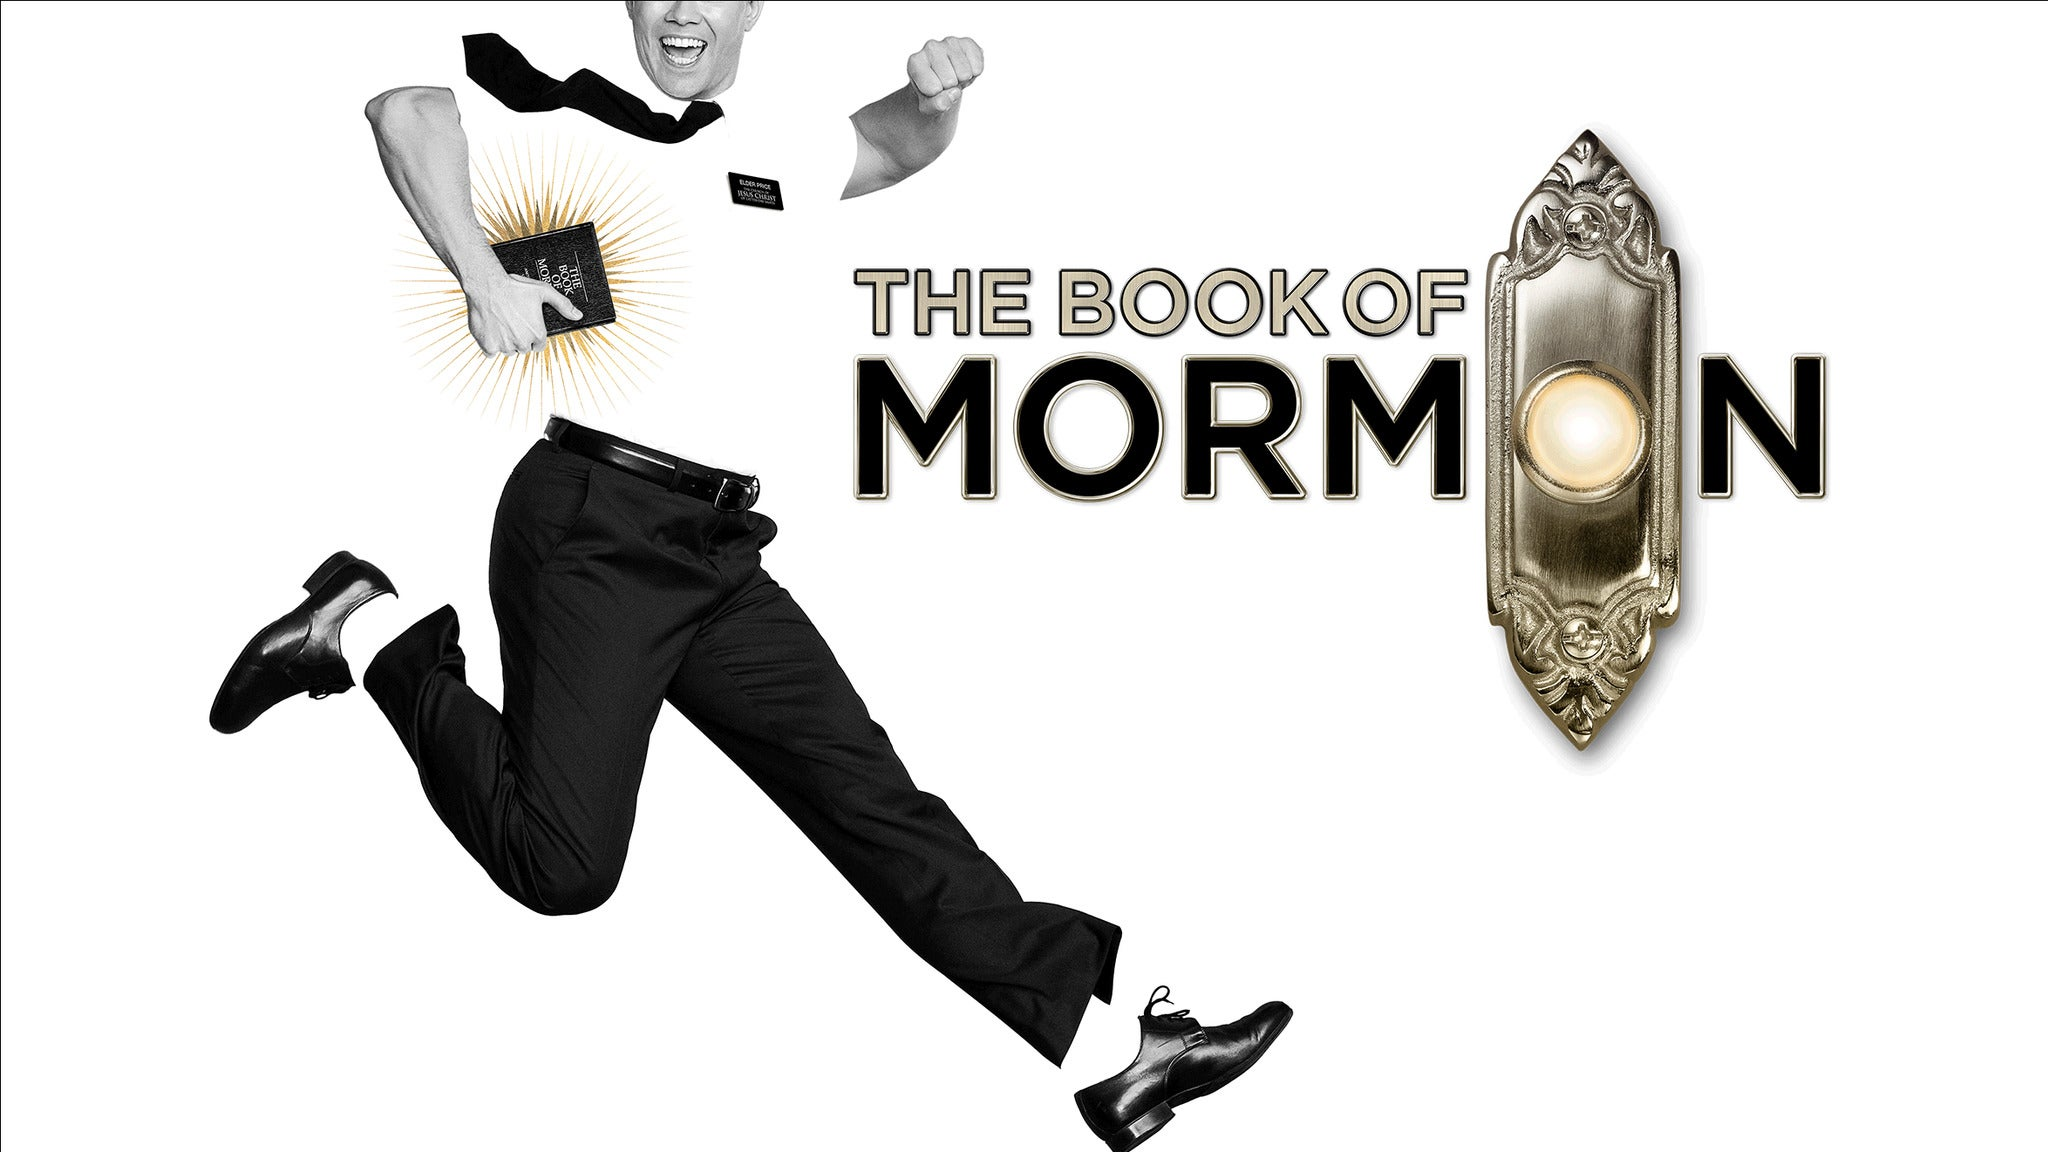 The Book of Mormon (Touring) - San Jose, CA 95113